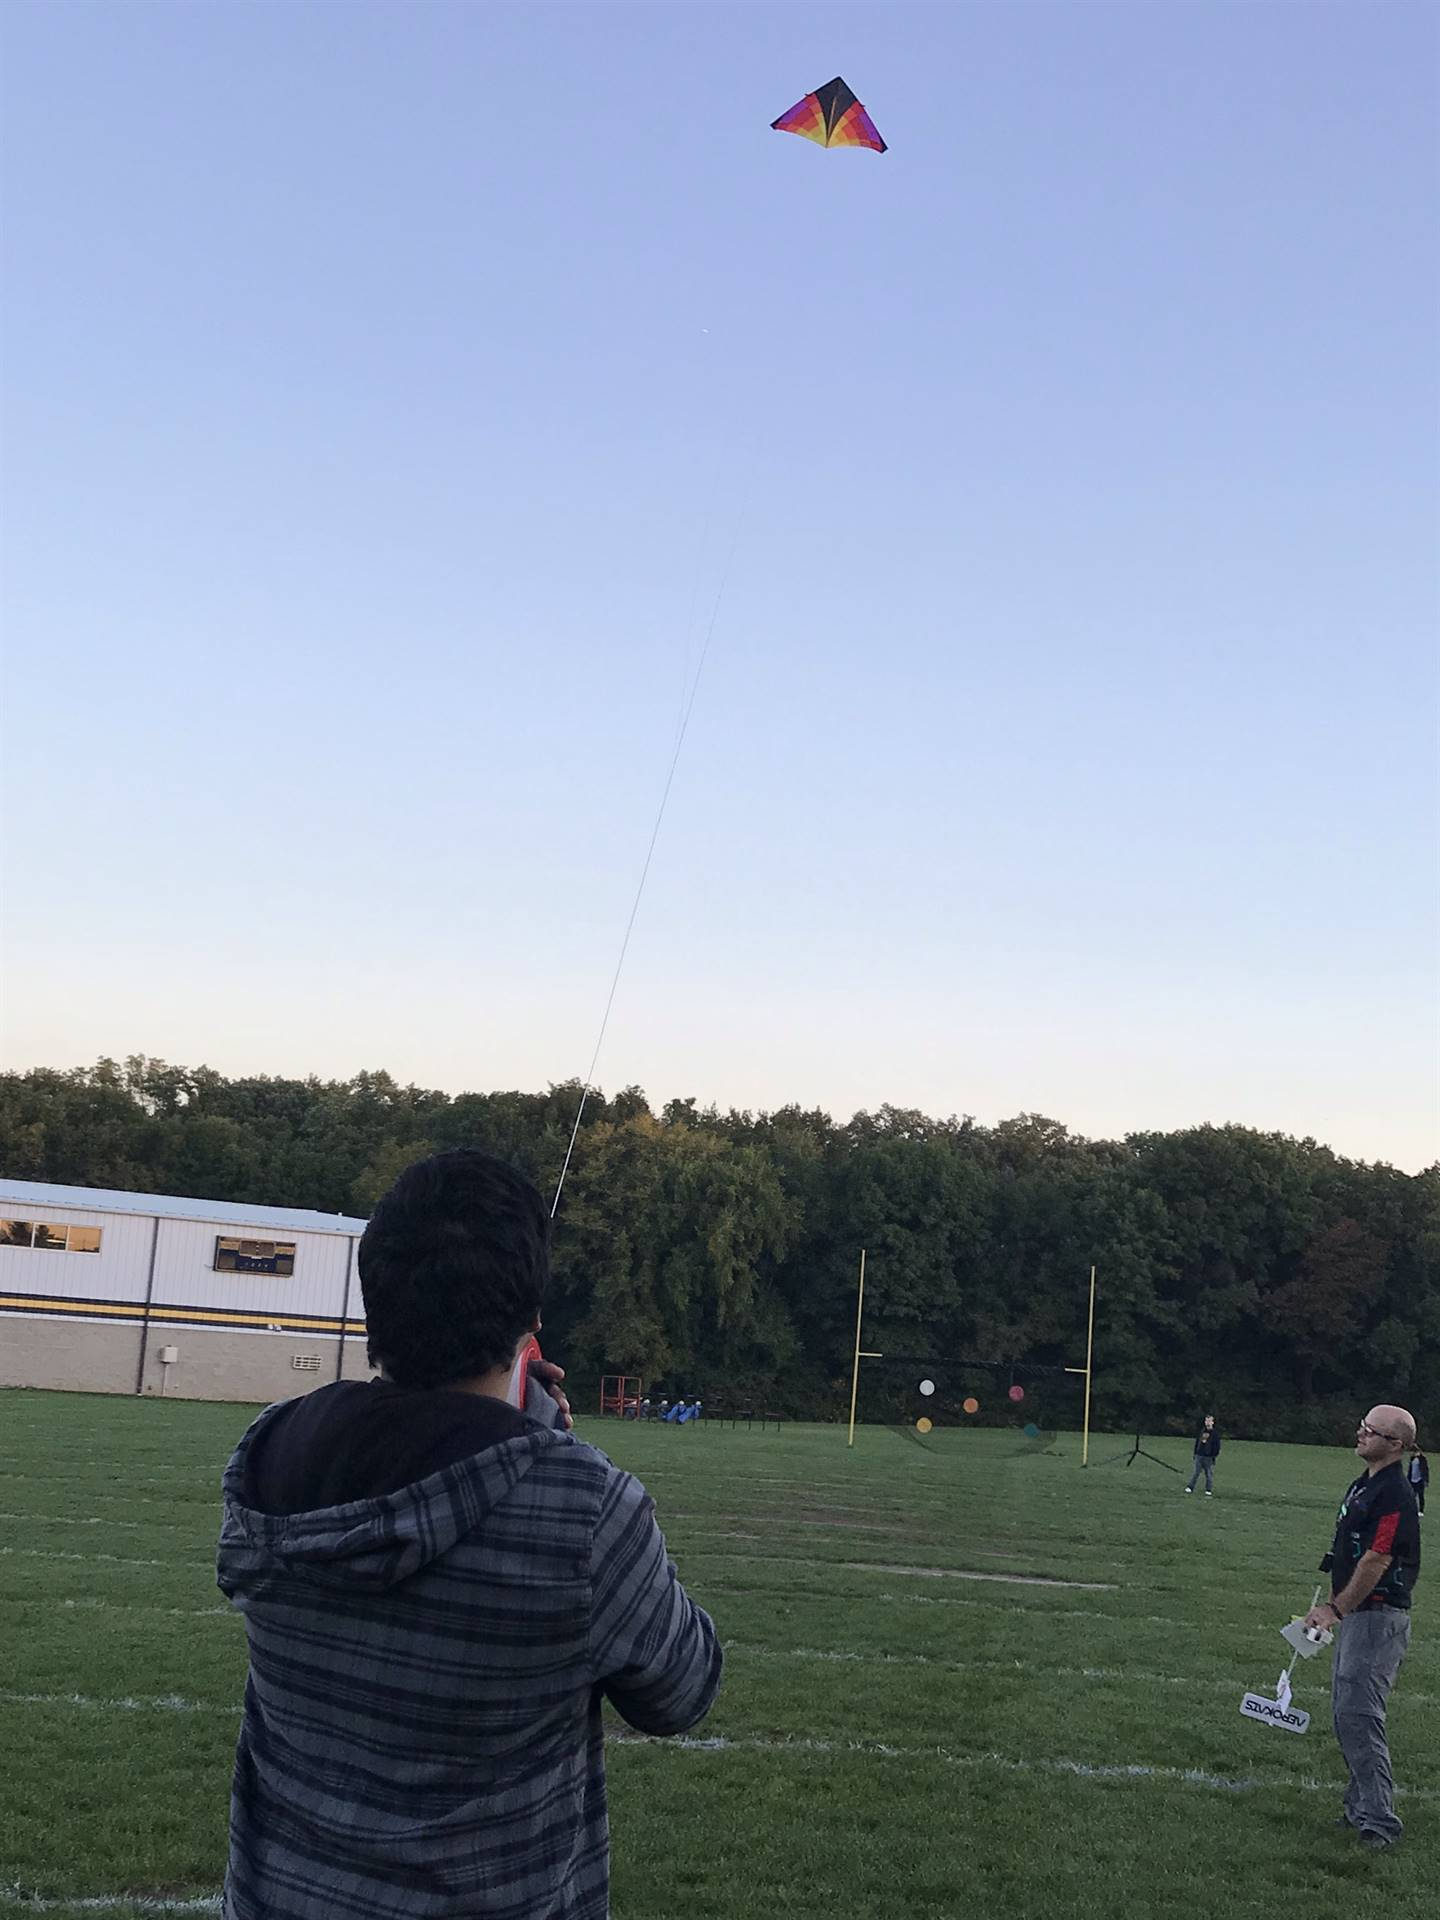 Science class flying kites